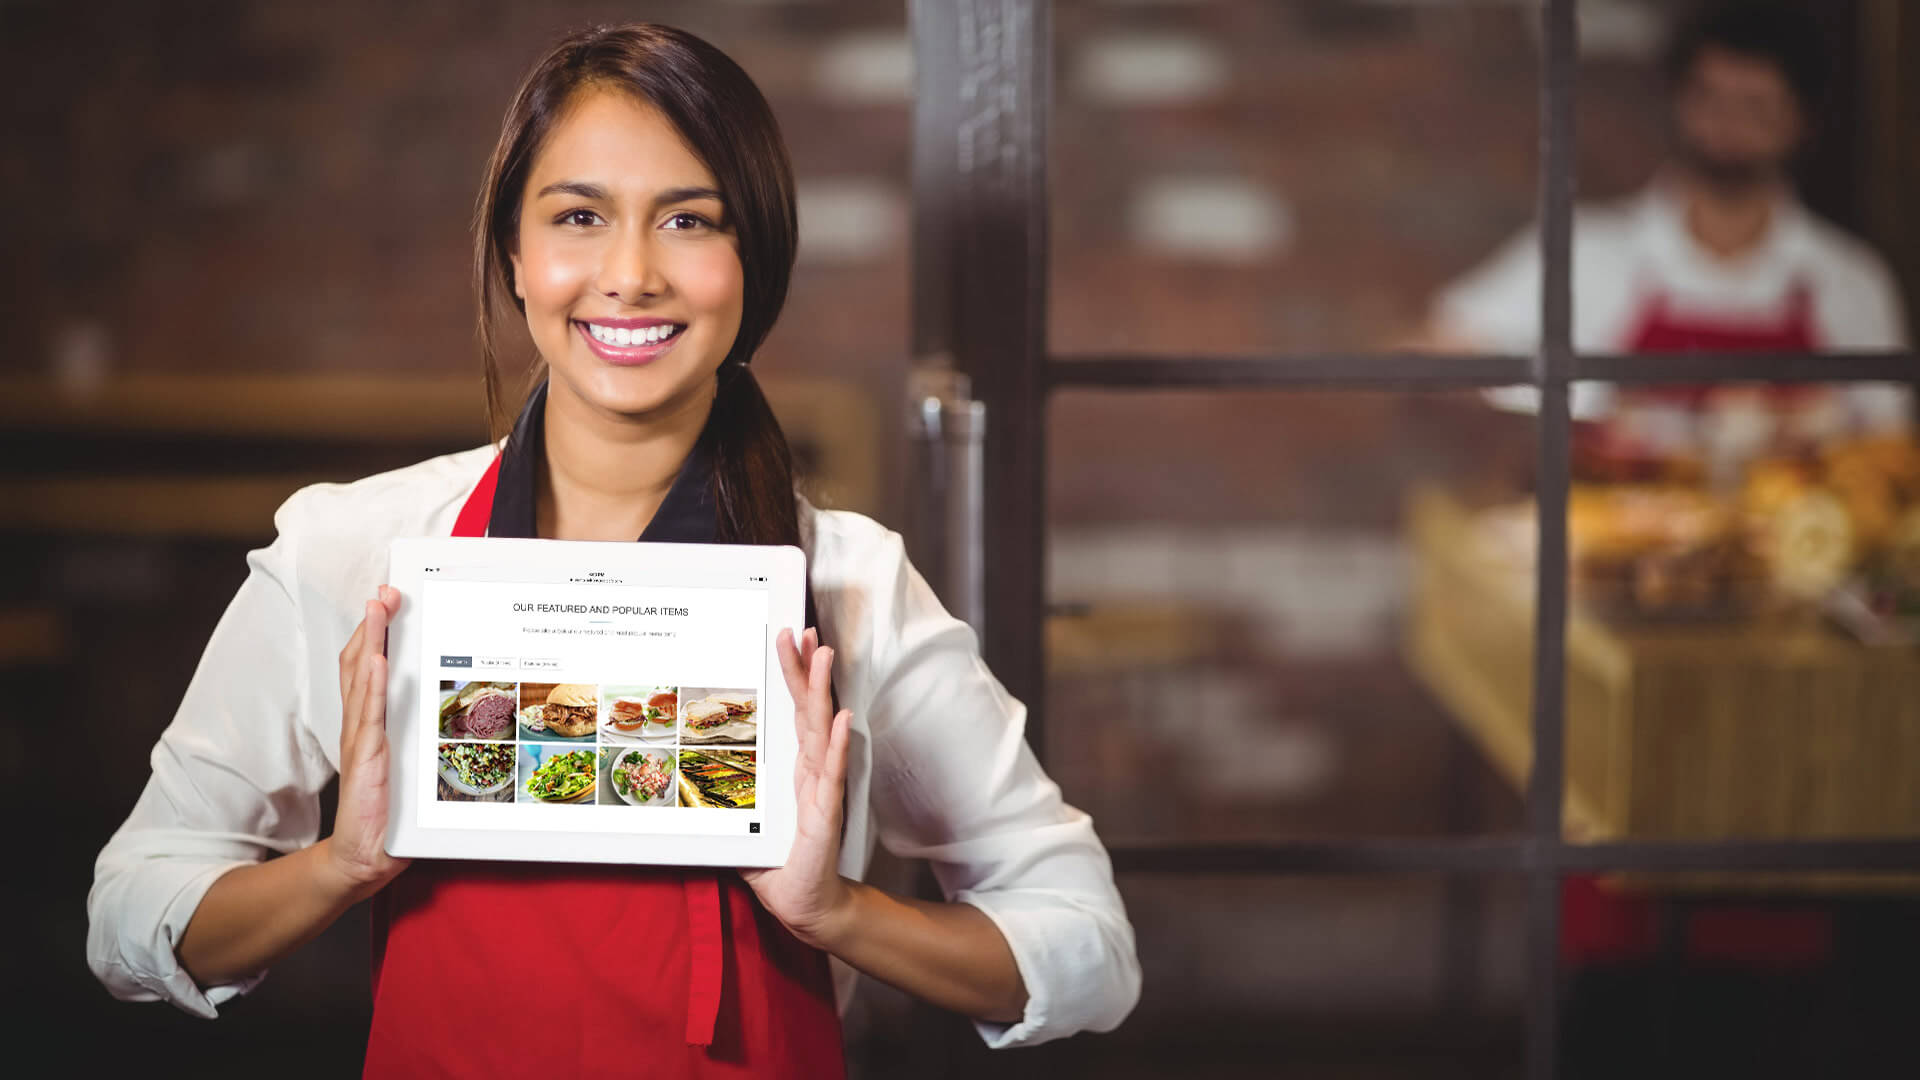 Smiling waitress holding a tablet with their restaurant's website on it - powered by Daily Delivery.